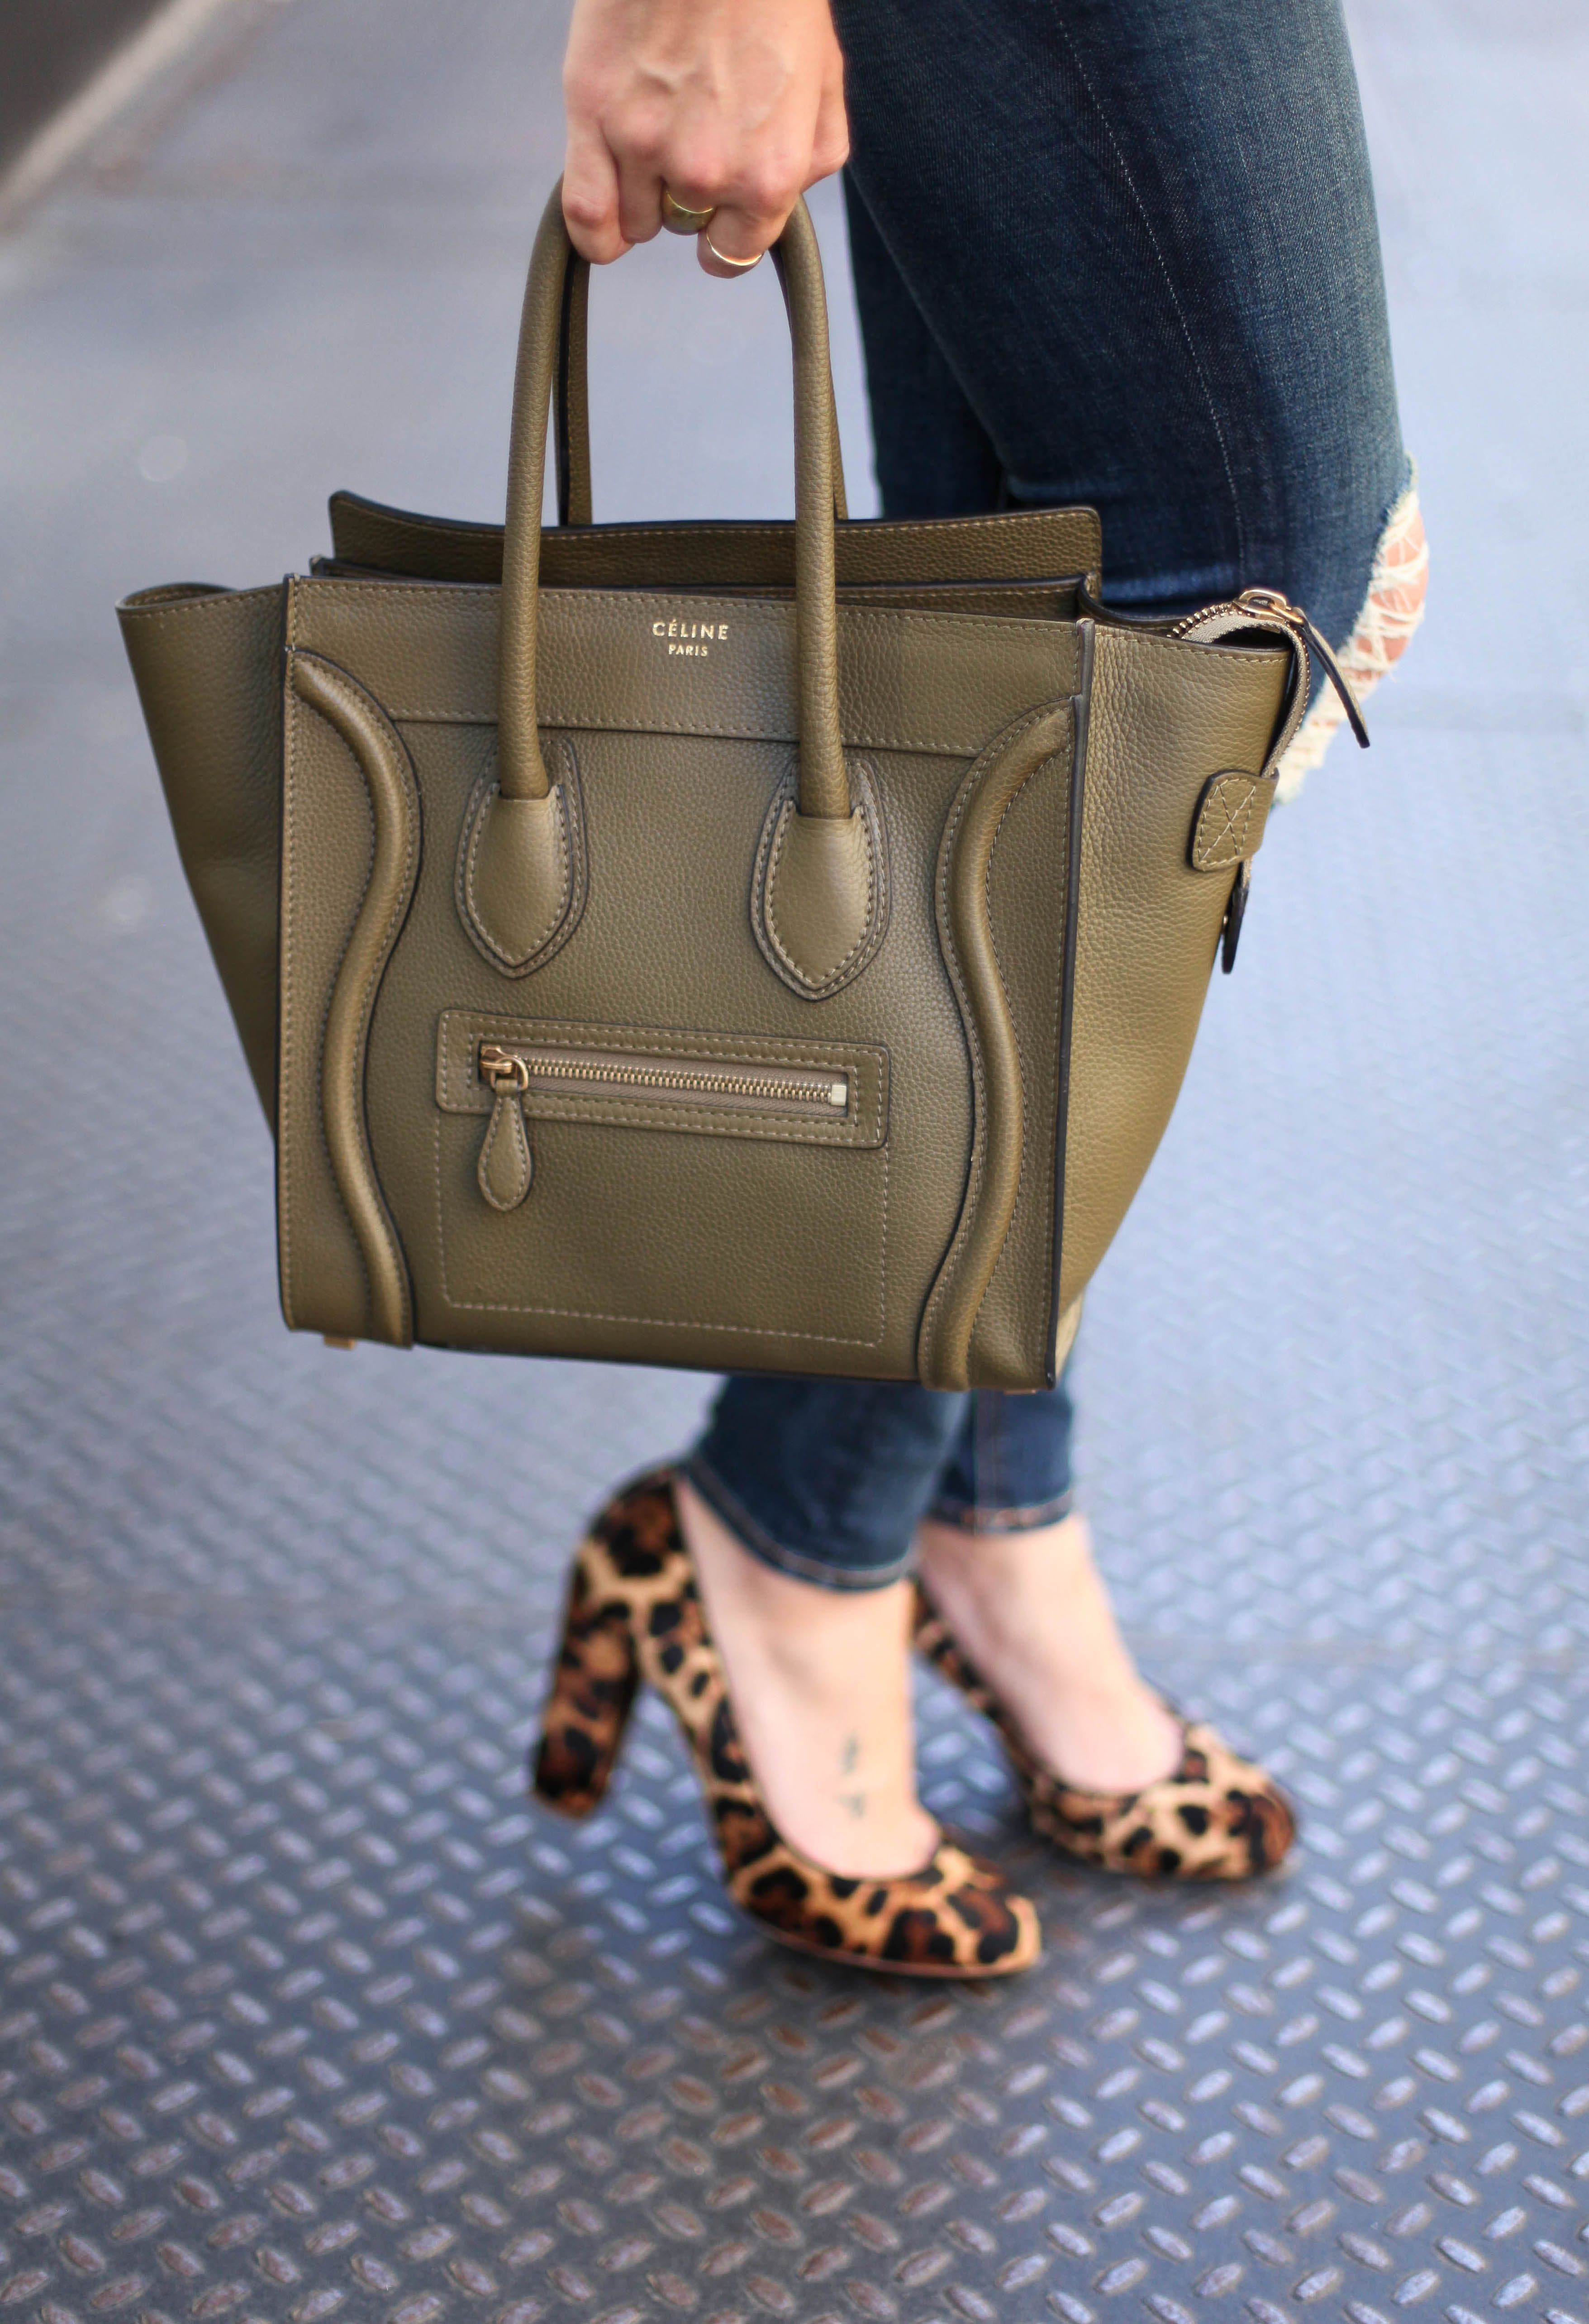 6b26eba766 Celine Mini Luggage in Jungle - buy this beautiful pre-owned designer bag  at an amazing reduced price! Click here.